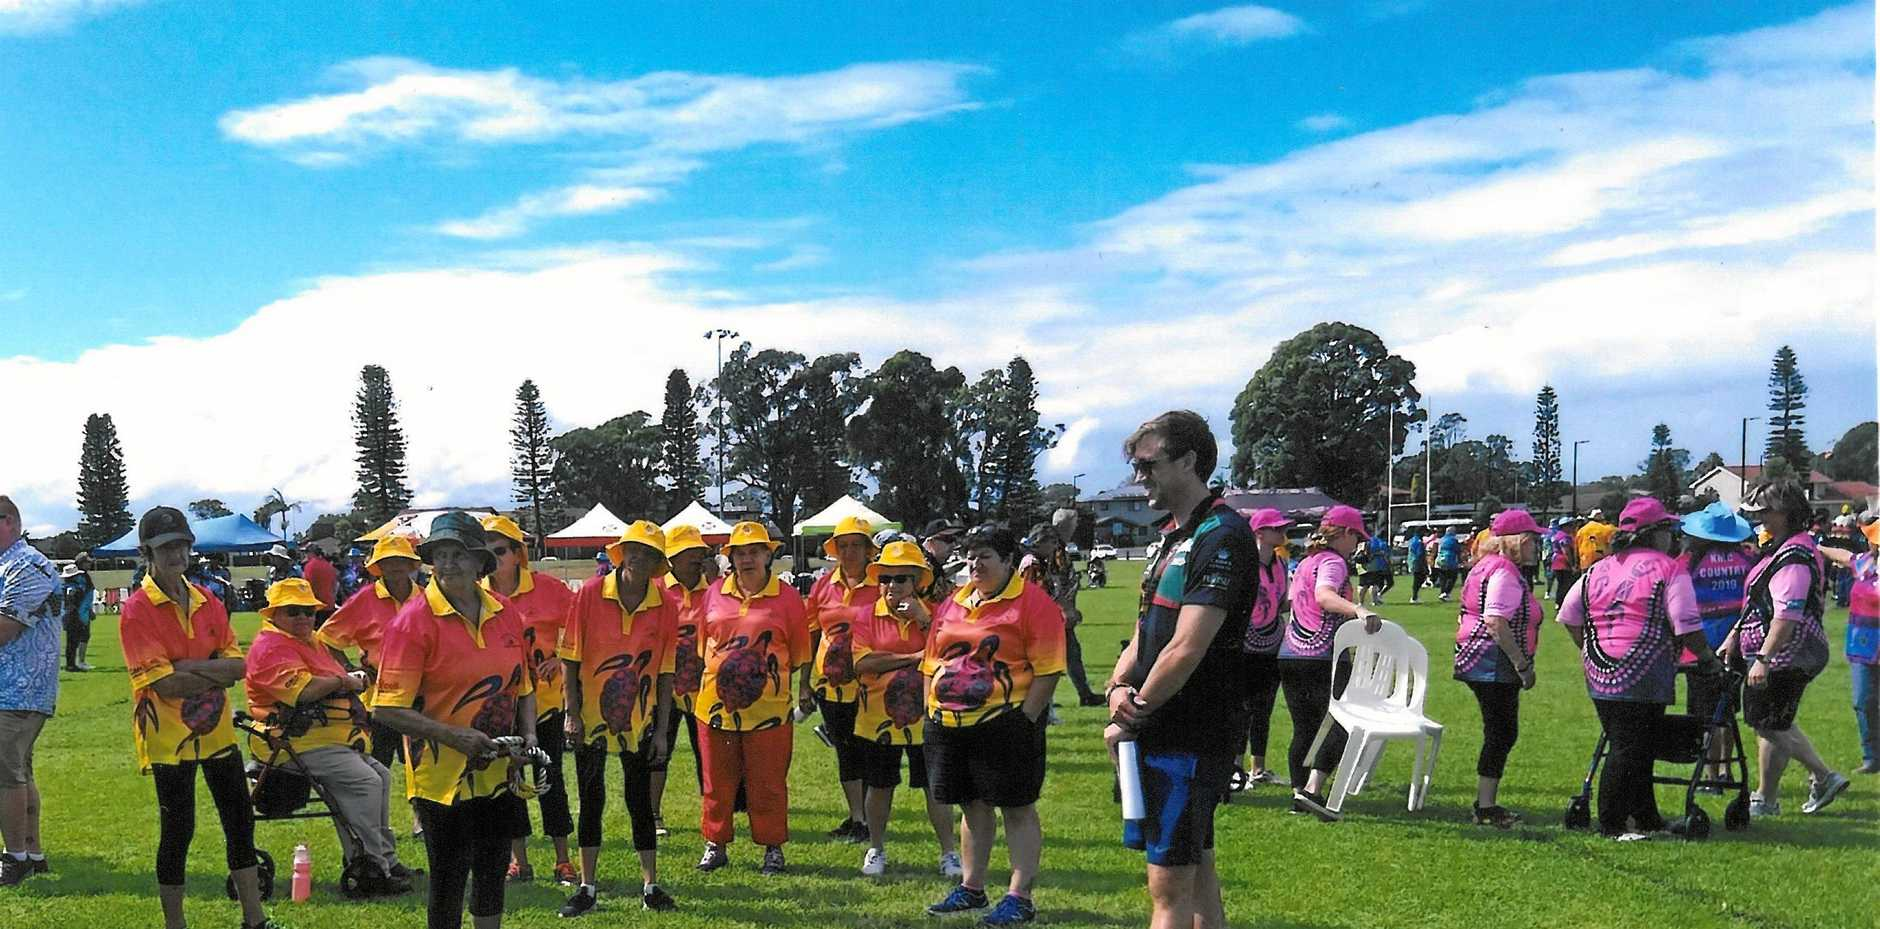 FRIENDLY COMPETITION: The Grafton team competes at the Elders Olympics held in Port Macquarie in April.